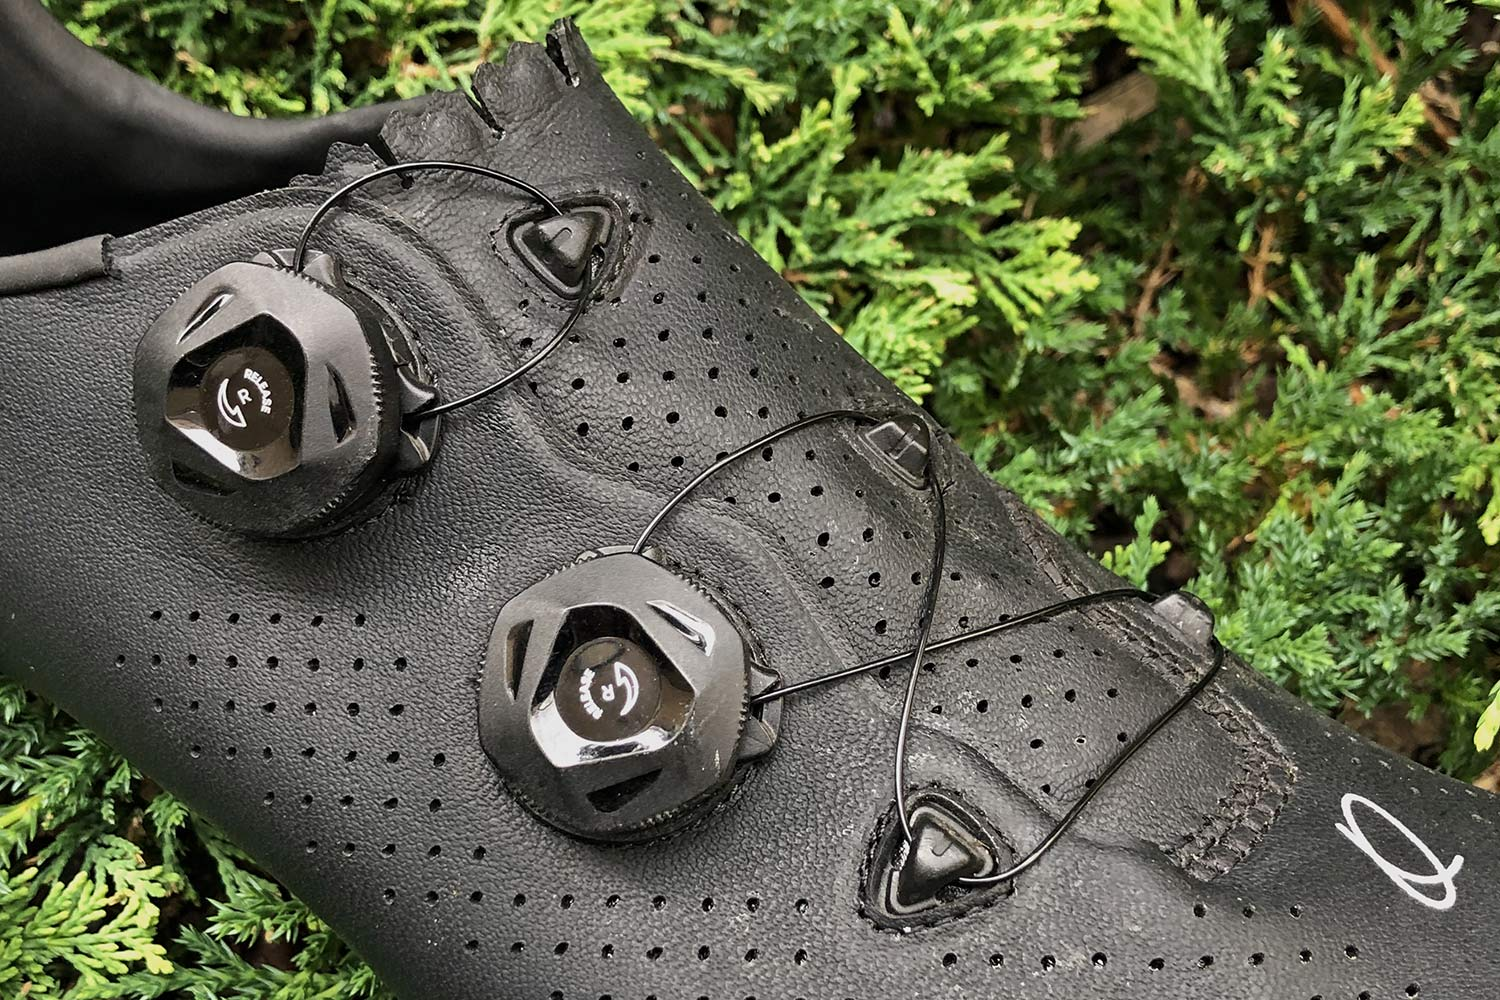 Quoc Mono II lightweight carbon-soled road cycling shoes Review,dial retention